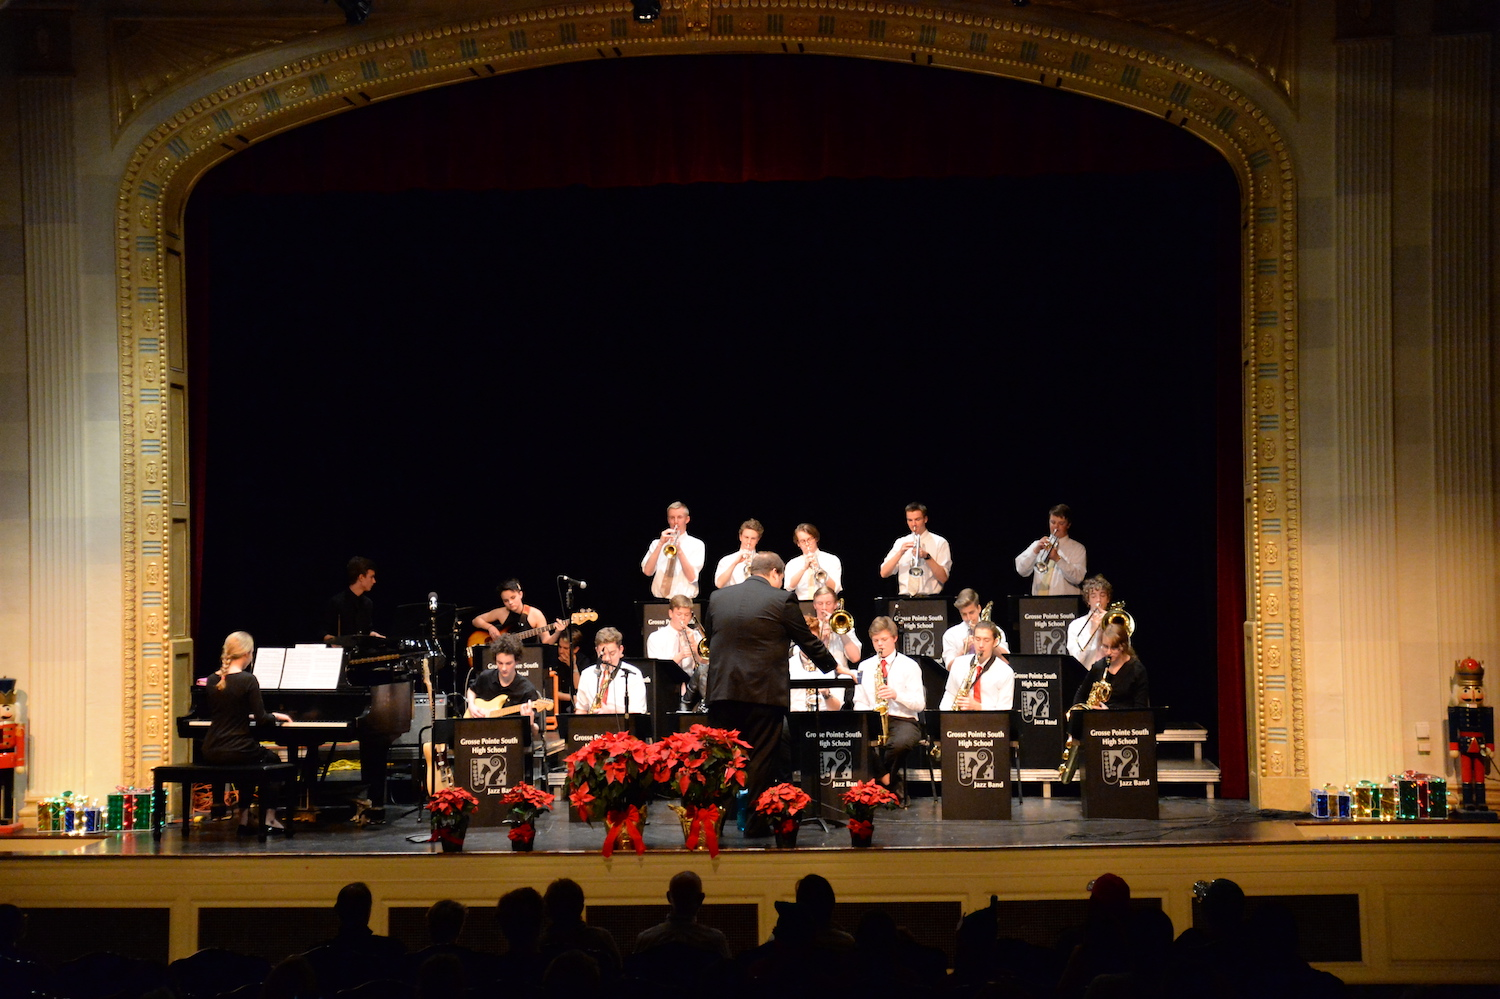 The South Jazz Band played at the Yule Be Boppin' Concert on Dec. 9. The Jazz Band rehearses at least twice per week, sometimes for more than two hours at a time.